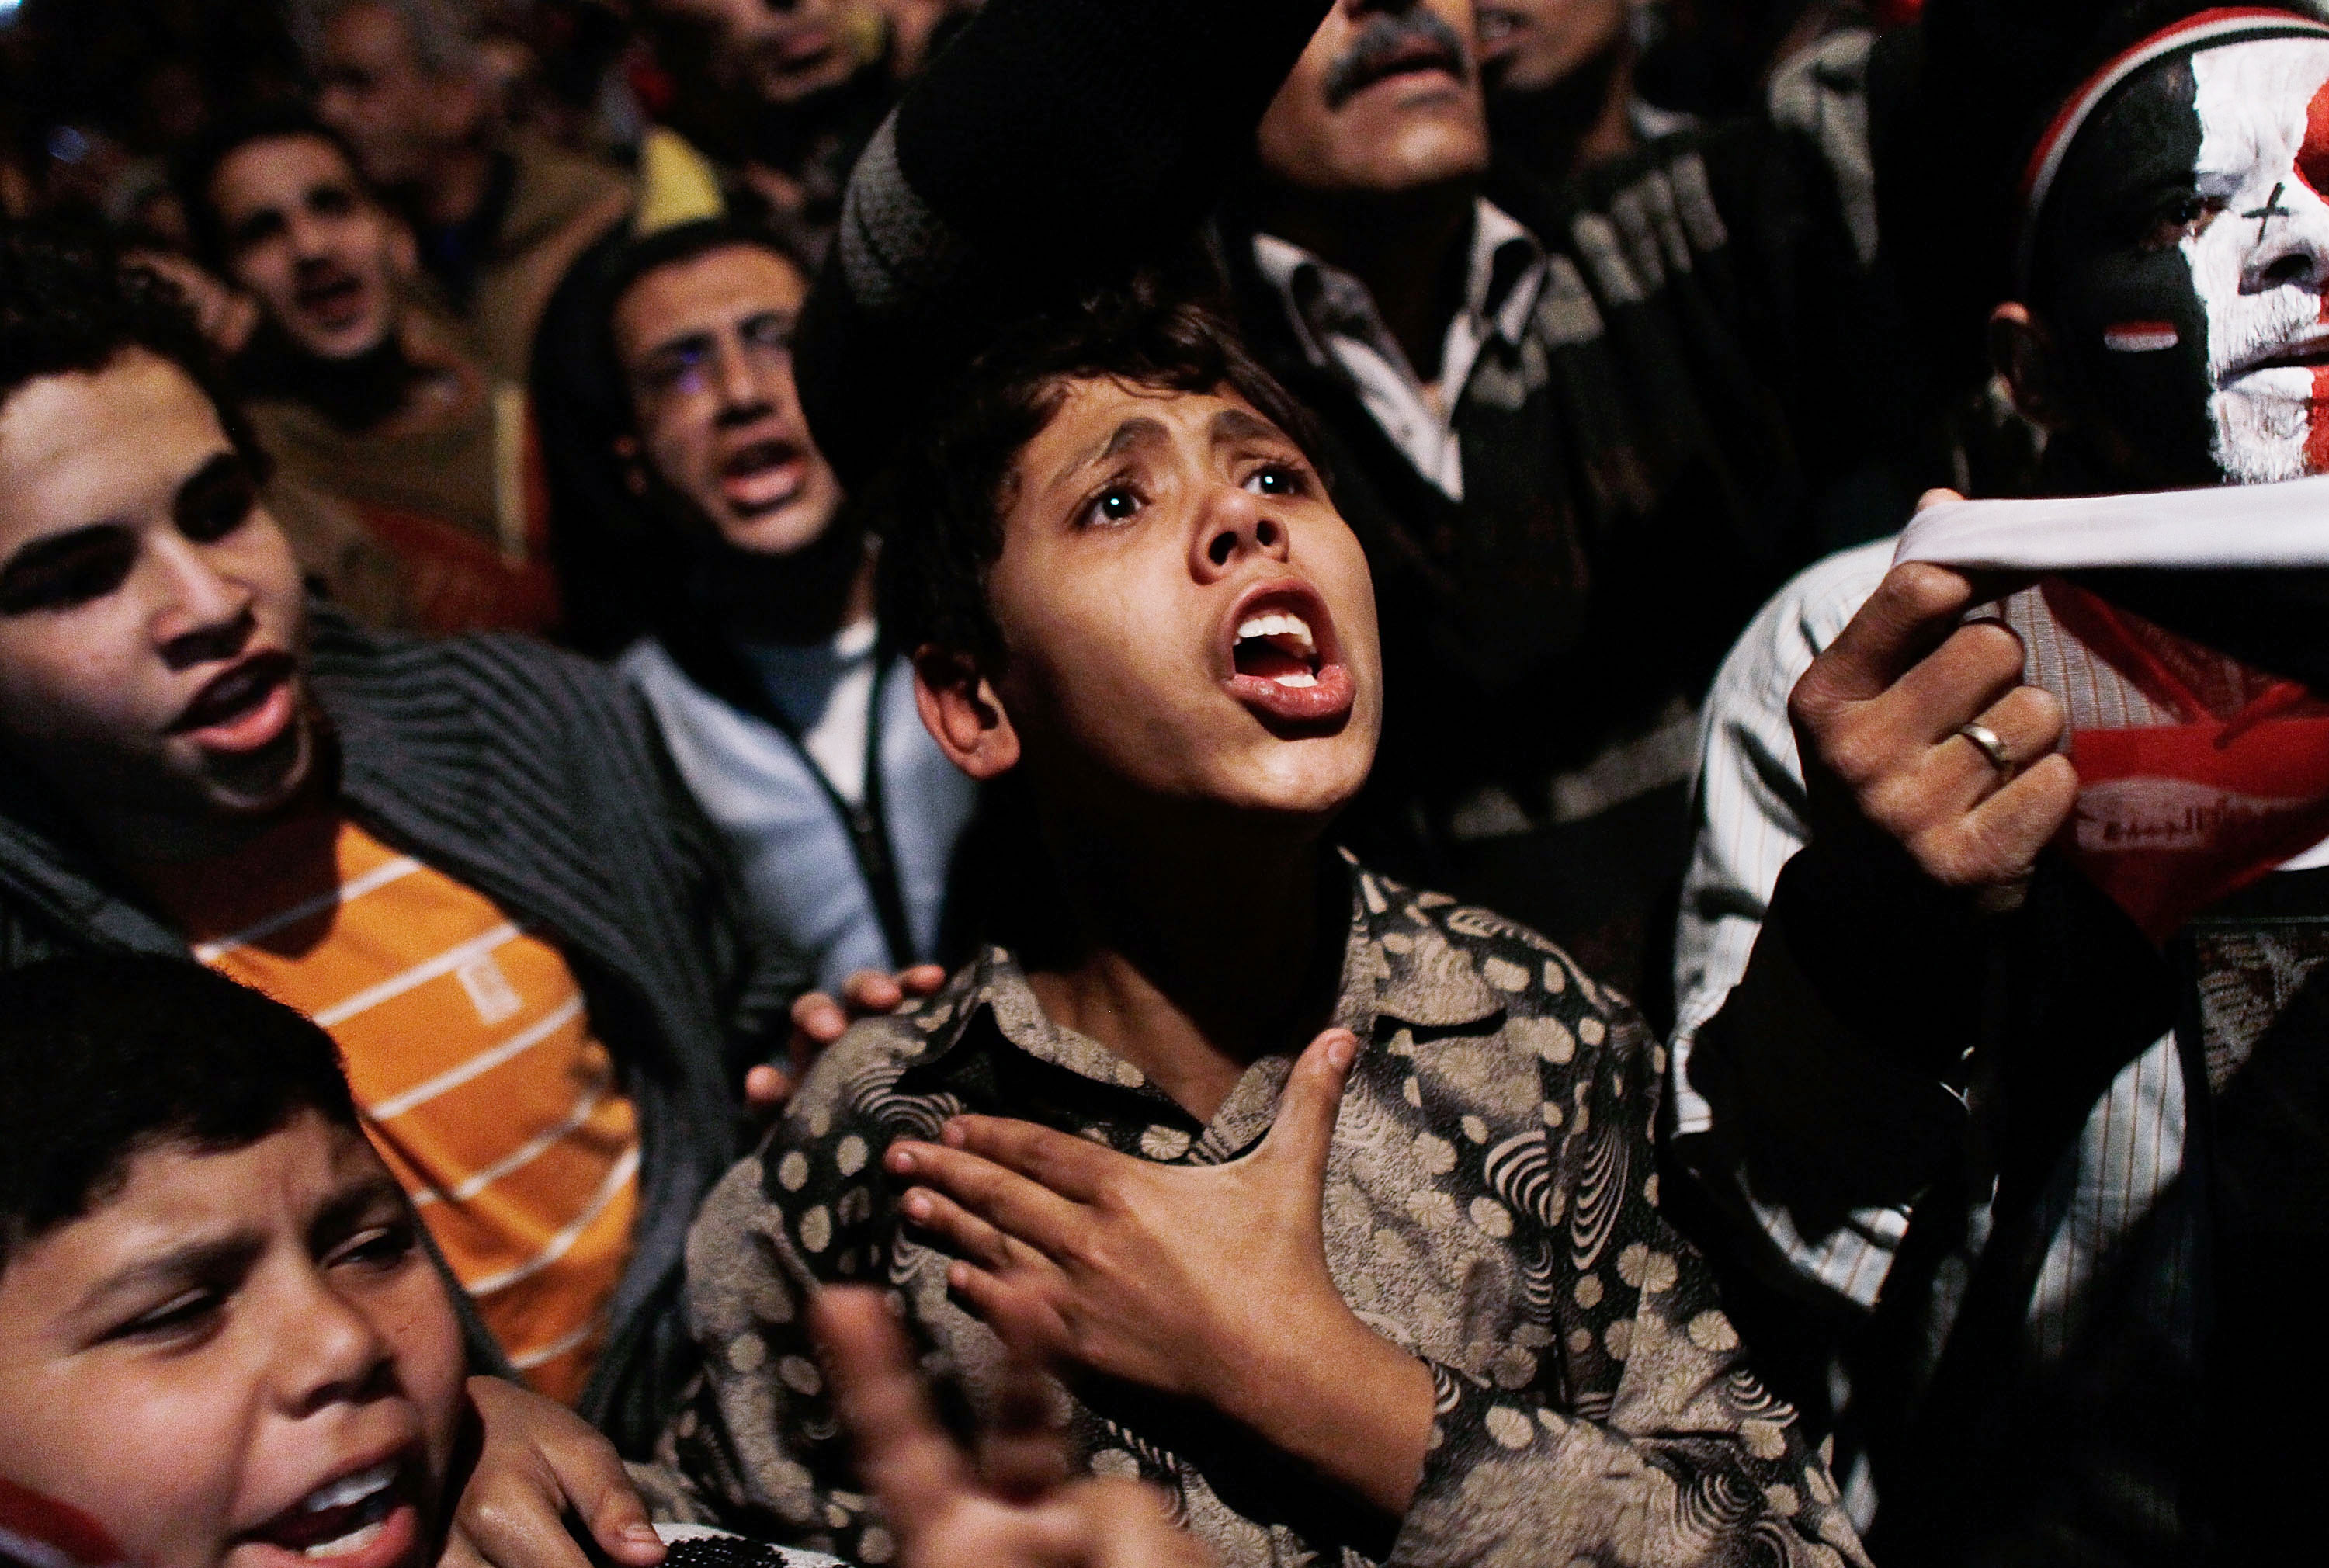 CAIRO, EGYPT - FEBRUARY 11:  A boy sings in Tahrir Square after it is announced that Egyptian President Hosni Mubarak was giving up power February 11, 2011 in Cairo, Egypt.  After 18 days of widespread protests, Egyptian President Hosni Mubarak, who has now left Cairo for his home in the Egyptian resort town of Sharm el-Sheik, announced that he would step down.  (Photo by Chris Hondros/Getty Images)